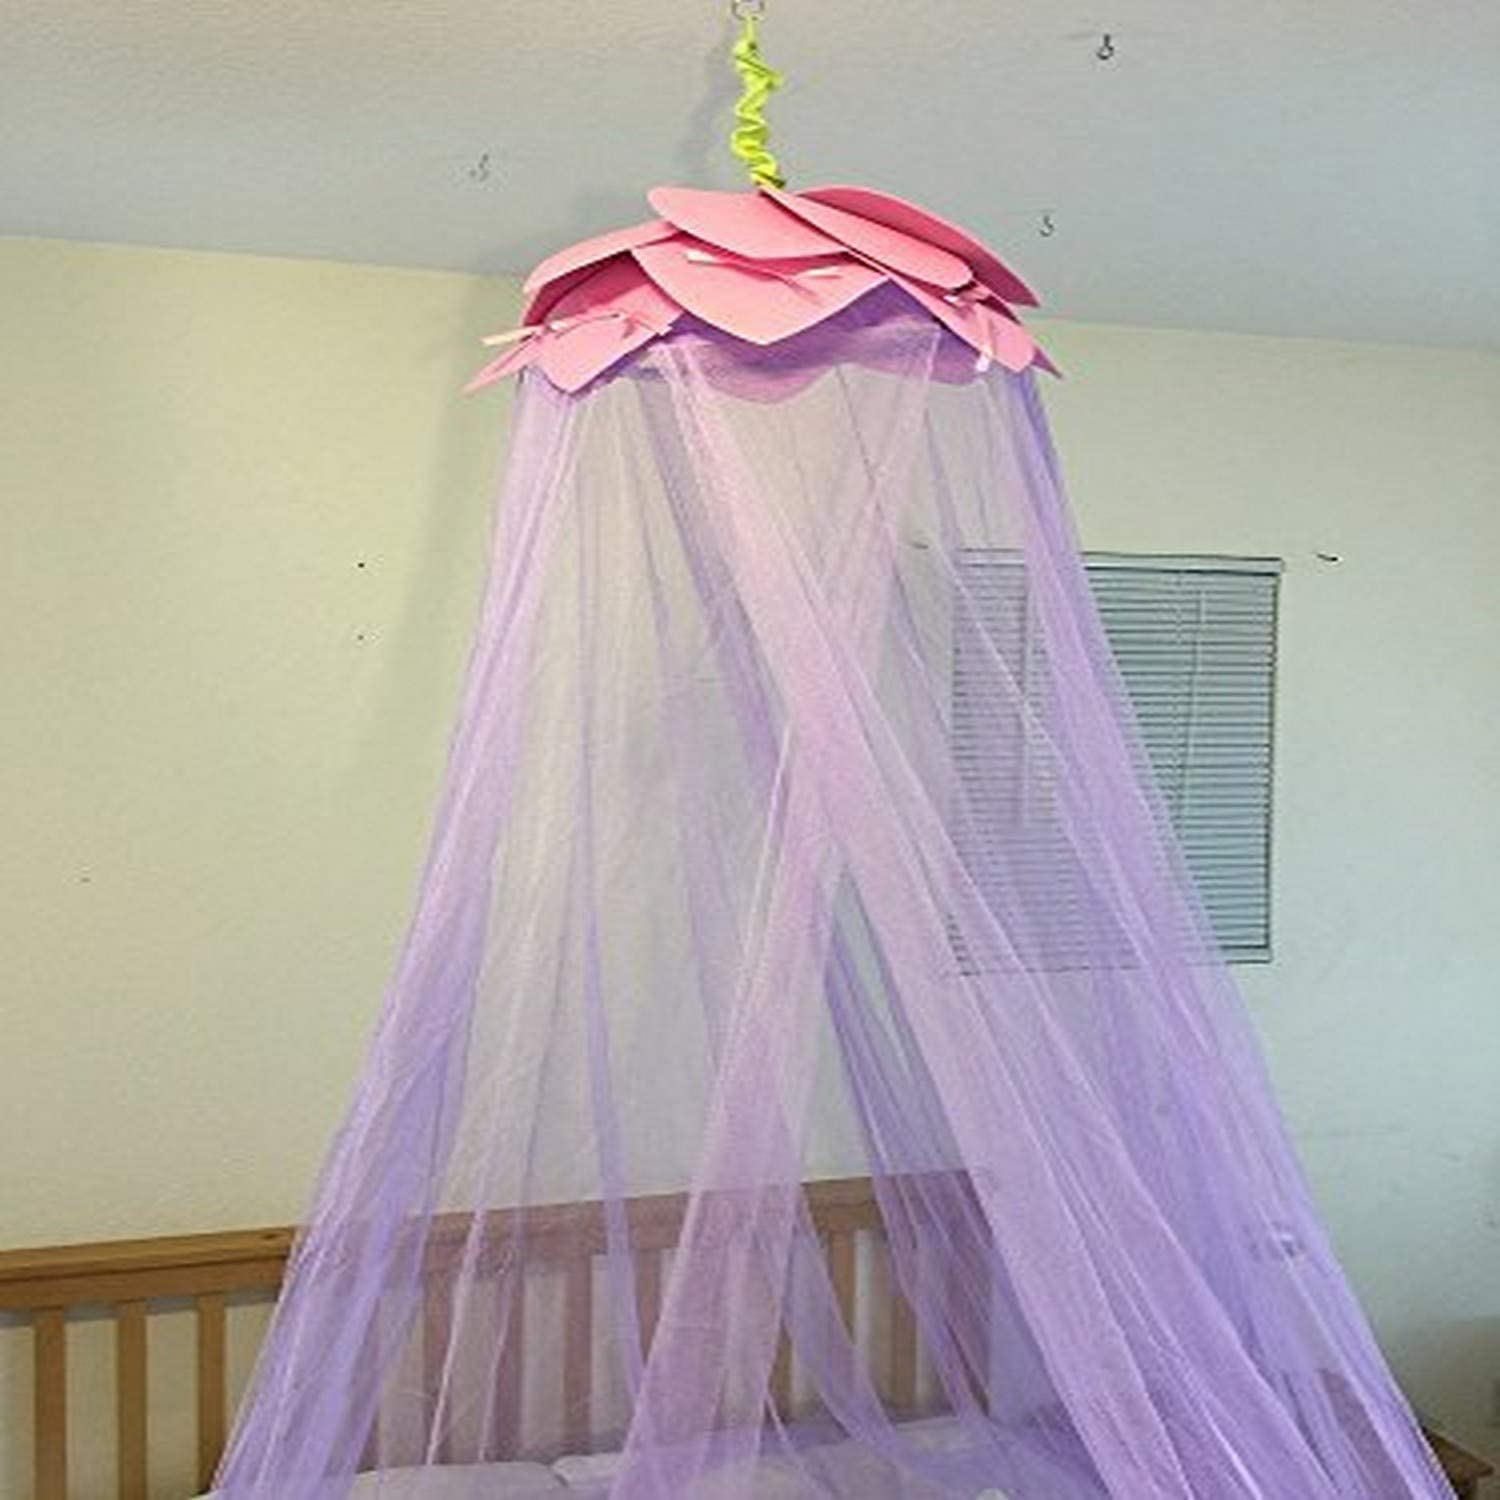 OctoRose Lotus Leaf Top Bed Canopy Mosquito Net for Bed, Dressing Room, Out Door Events (Purple)